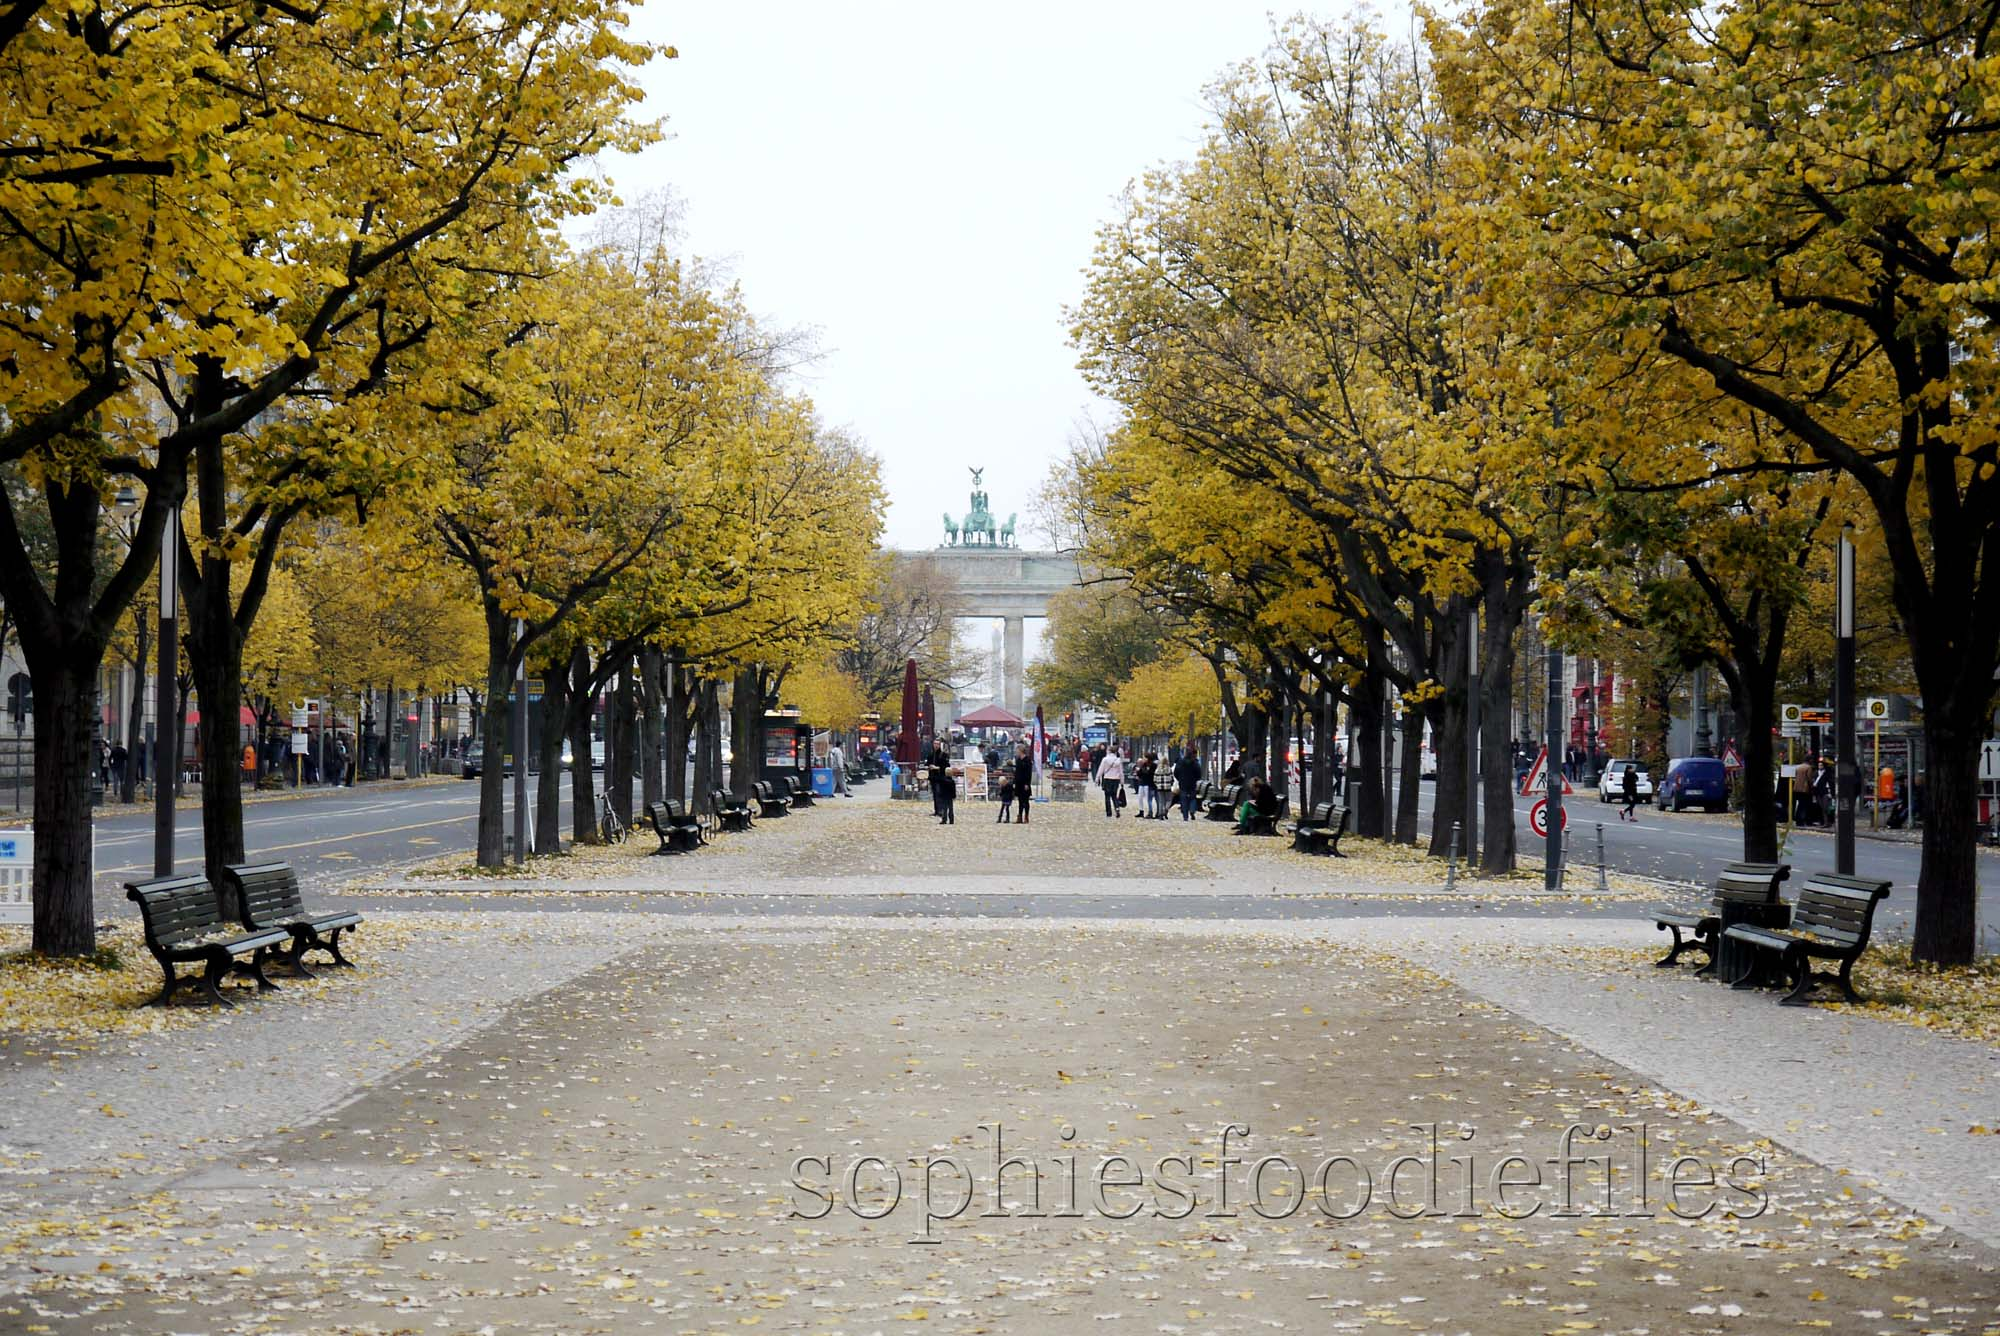 Unter den Linden Berlin, Travelling Sophie: Berlin part 1! – Sophie's Foodie Files